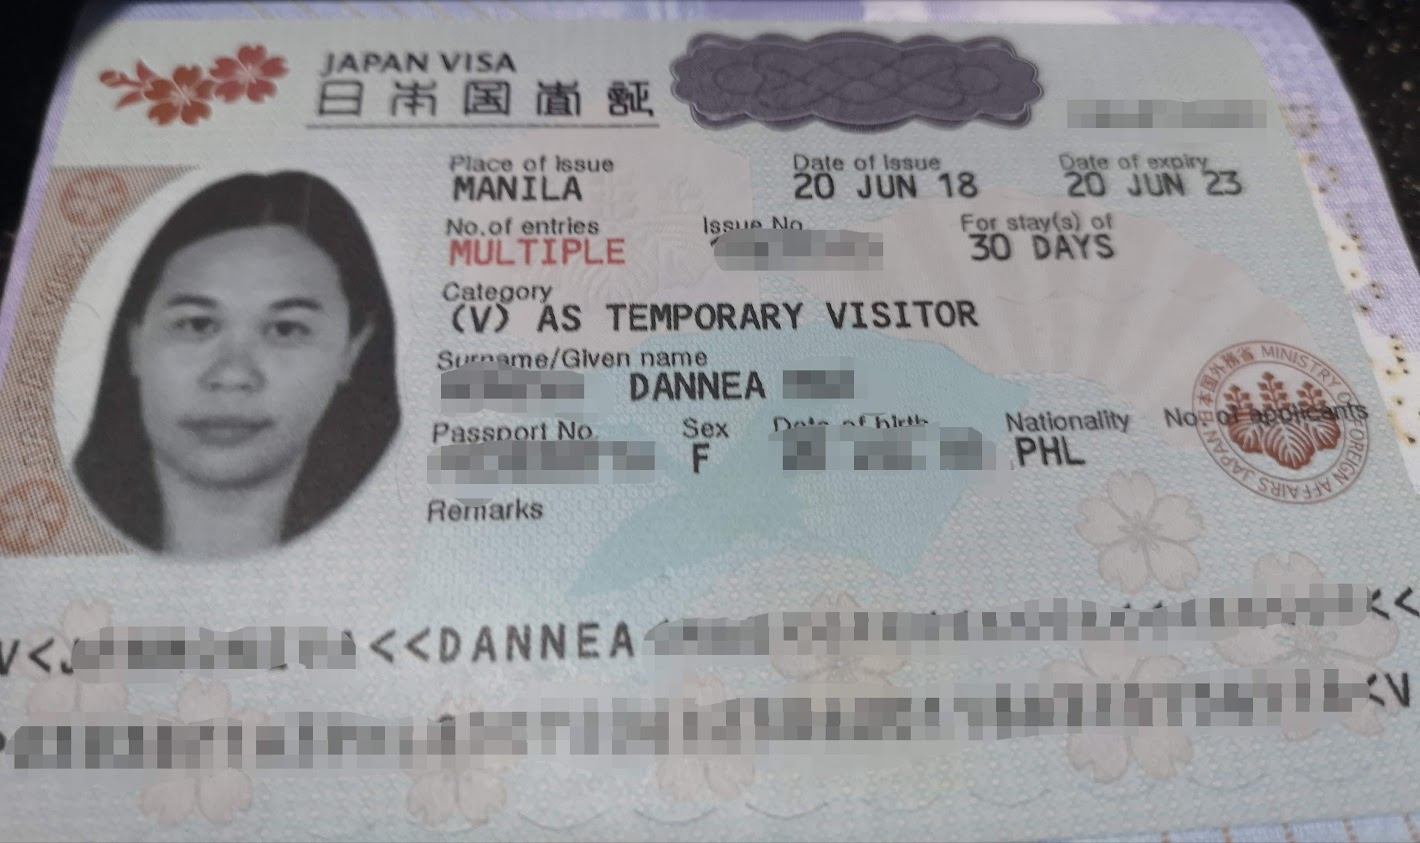 multi-entry Japan visa